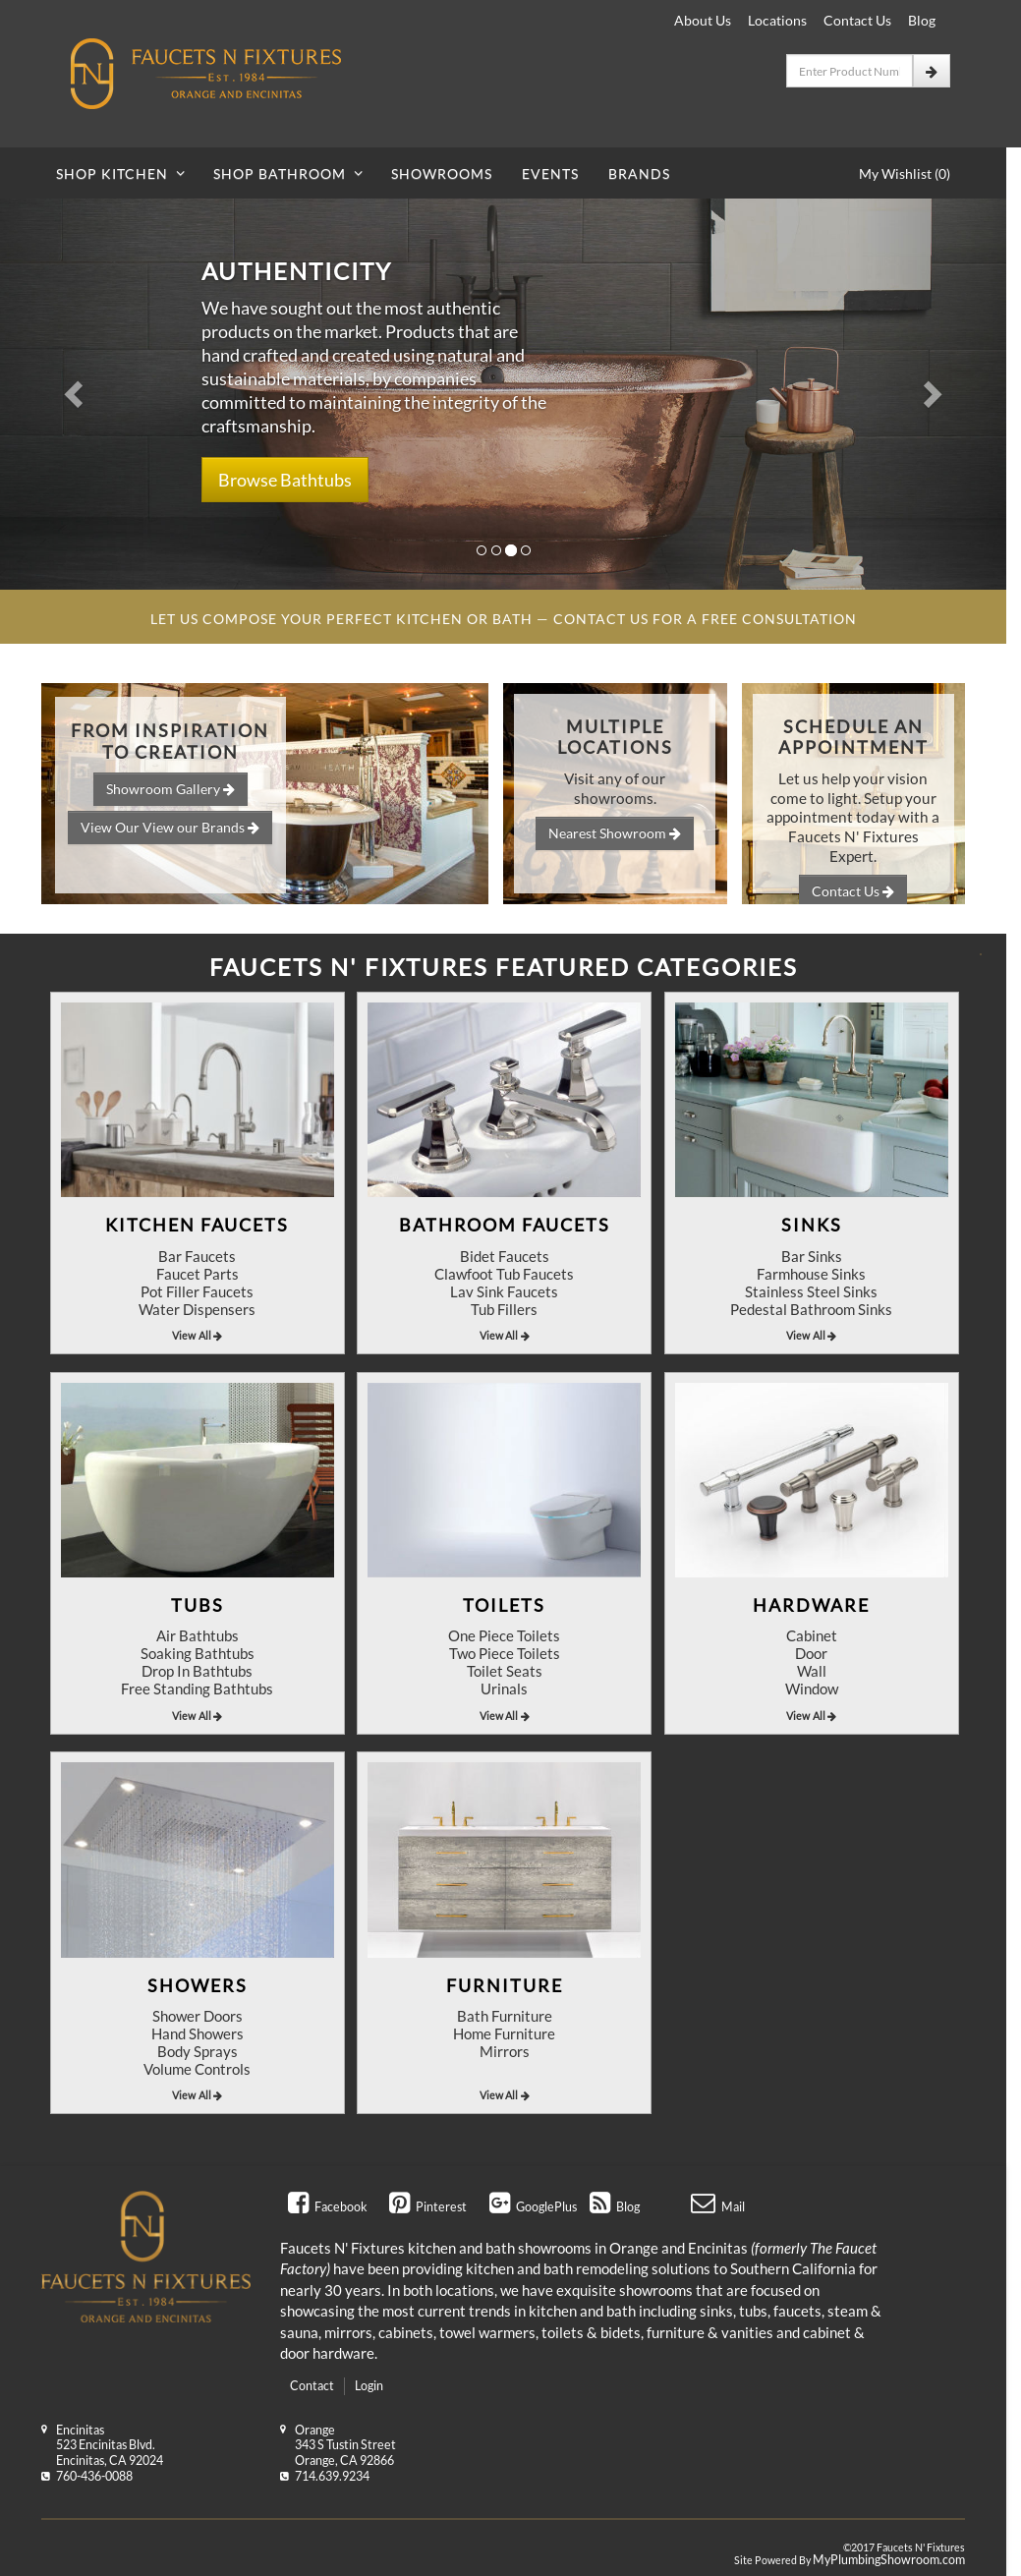 Faucets N Fixtures Competitors, Revenue and Employees - Owler ...